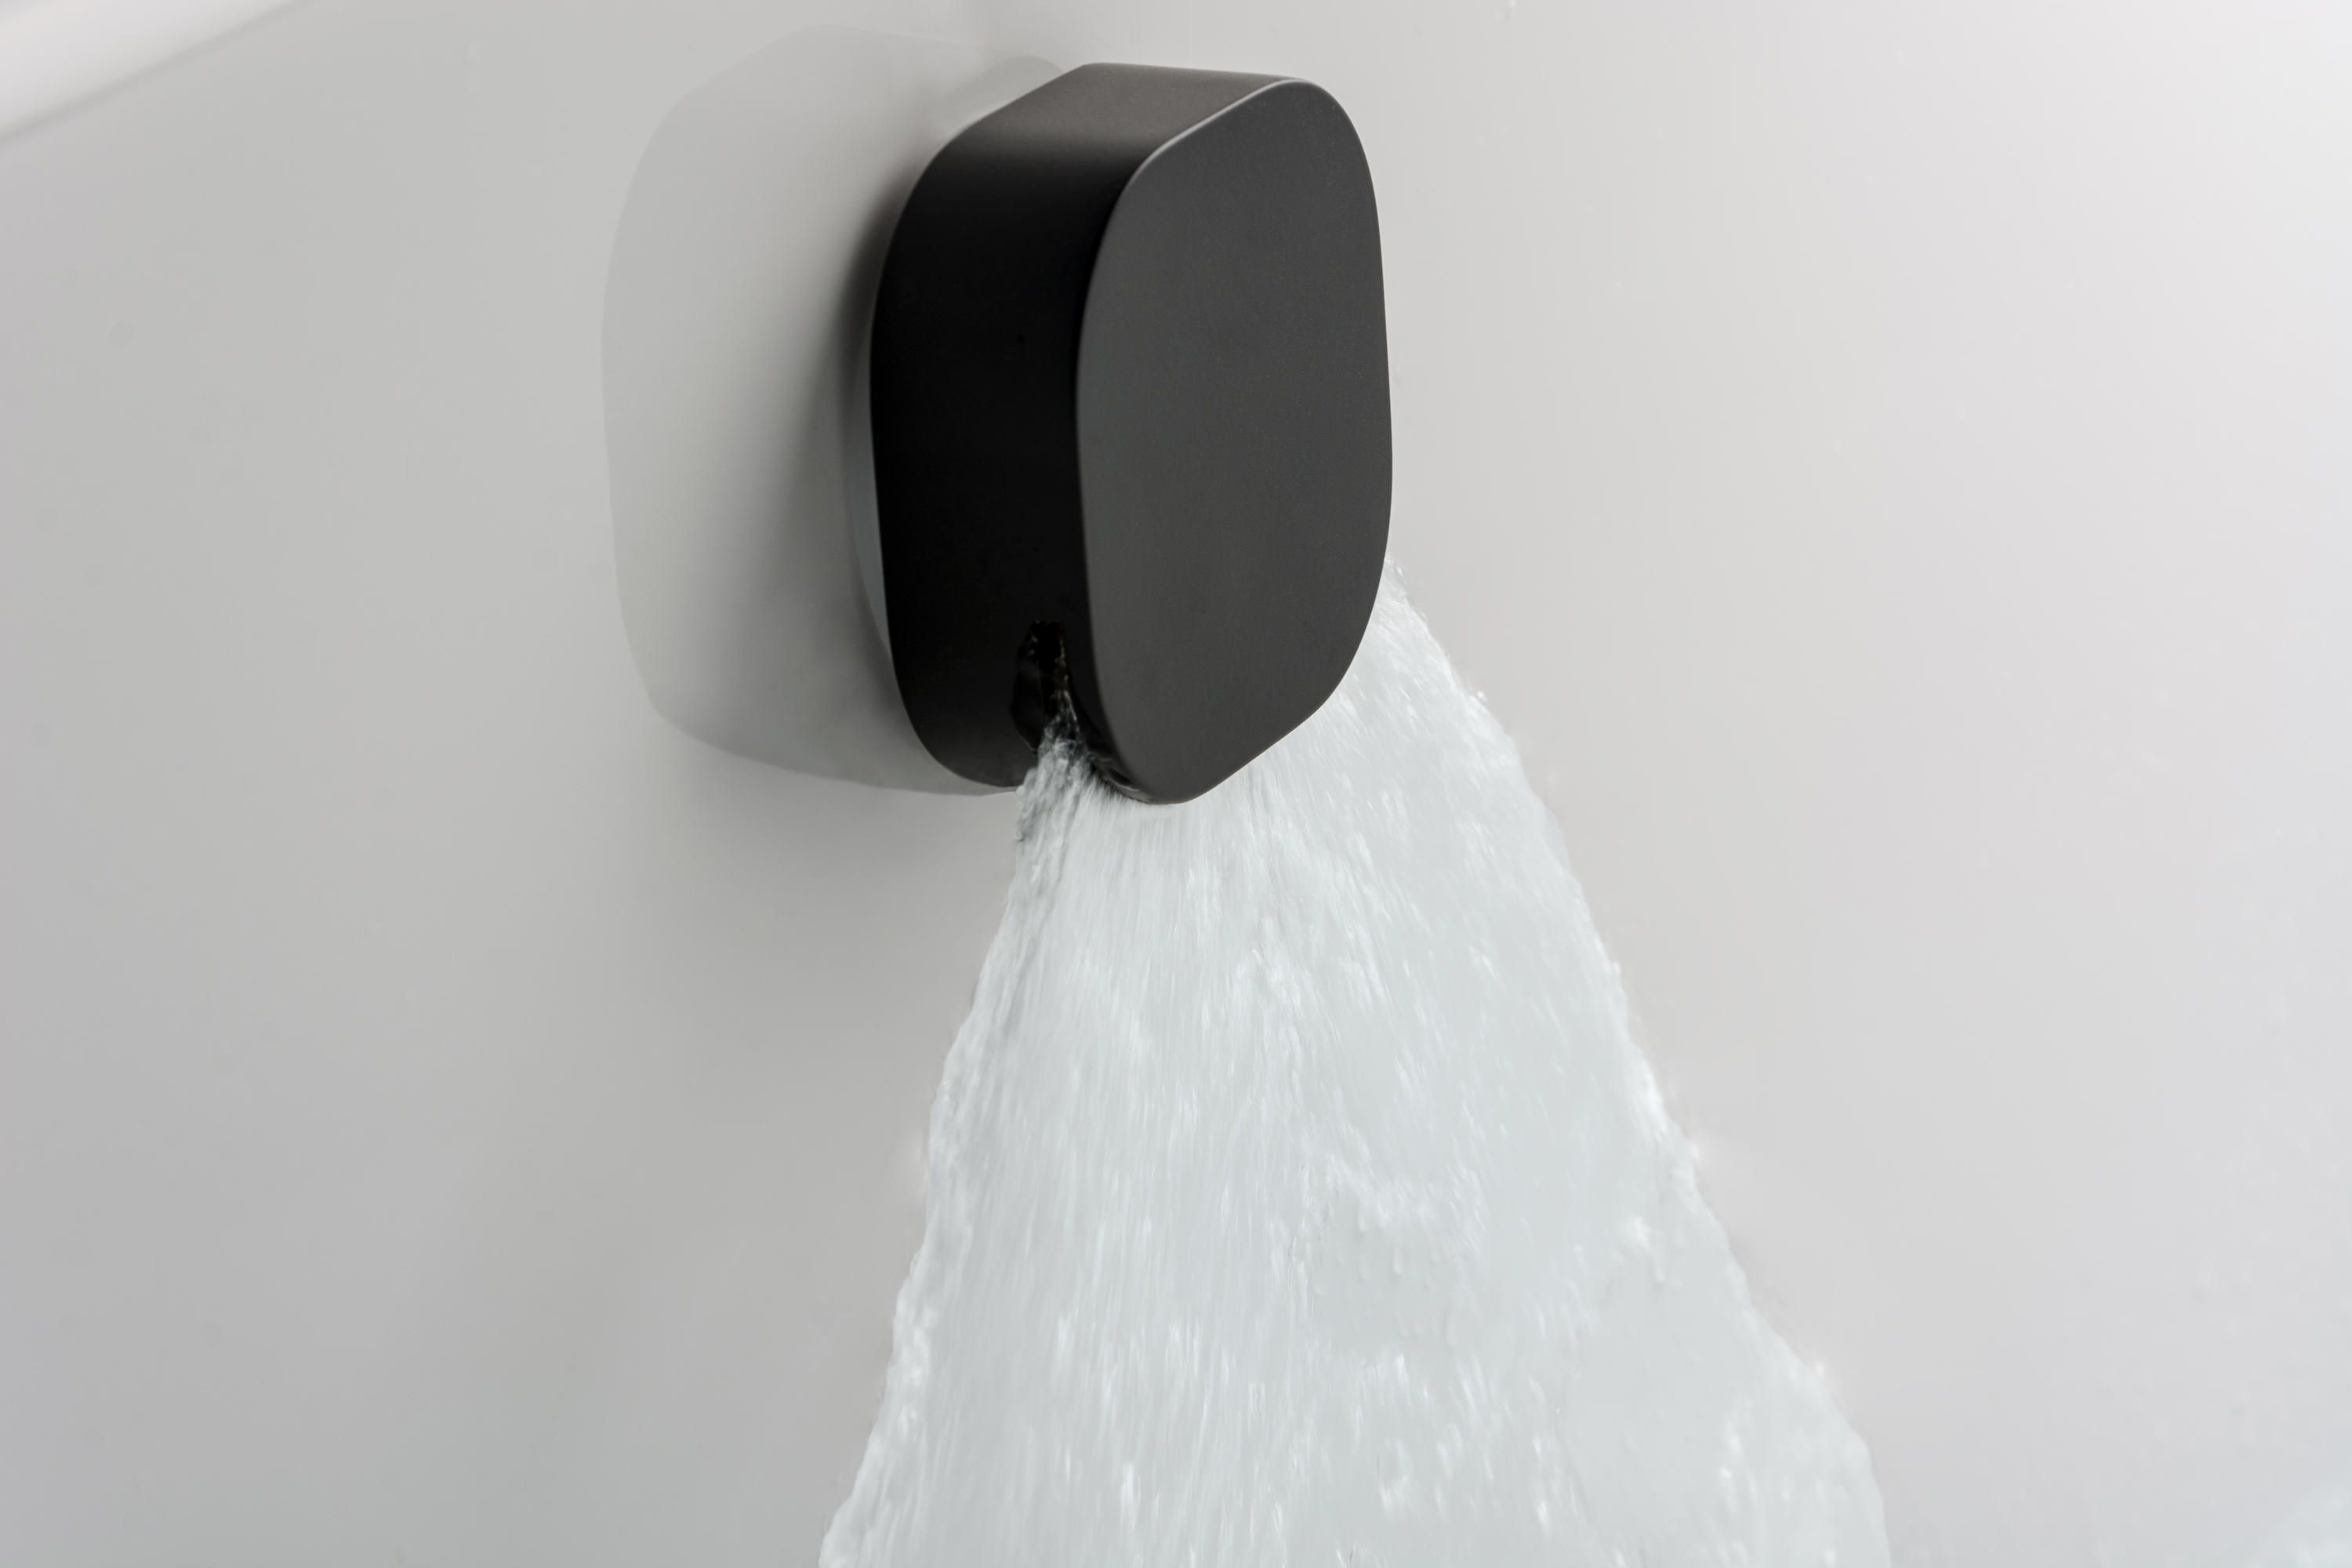 Urban recessed shower head duscharmaturen von bagnodesign